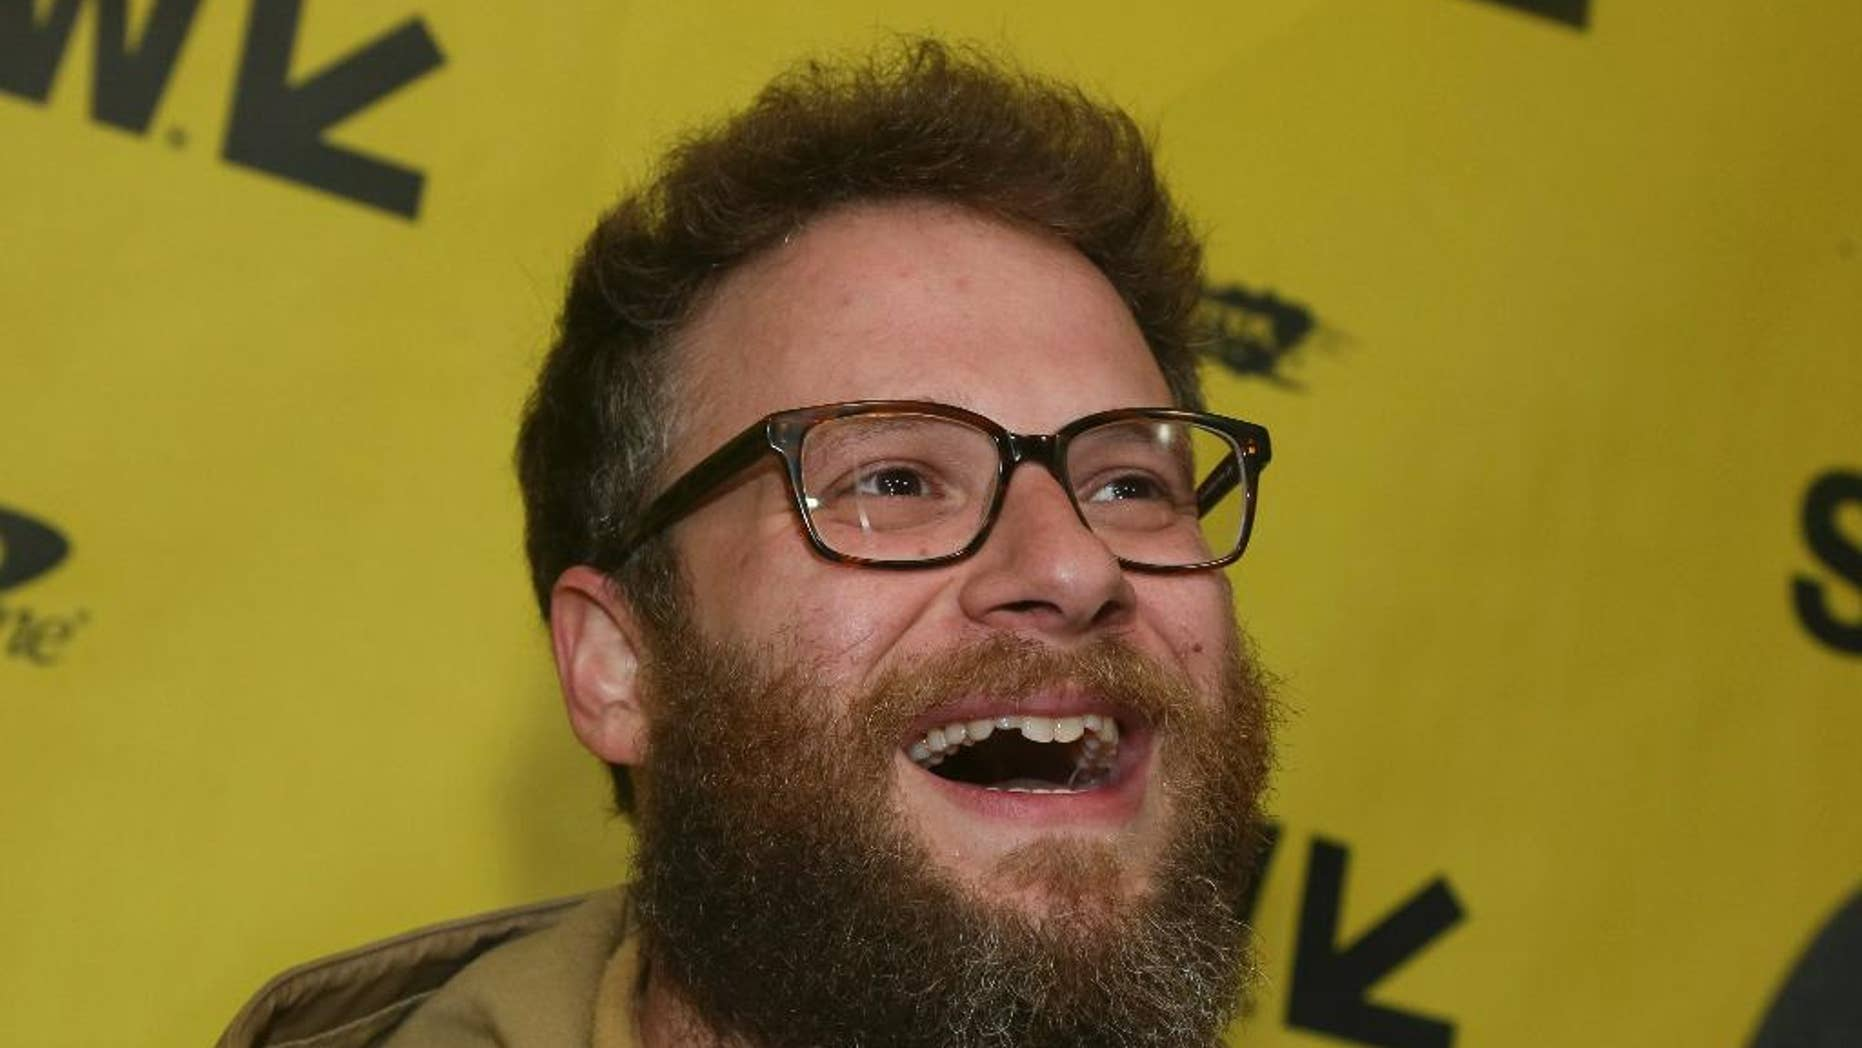 """FILE - In this March 12, 2017, file photo, Seth Rogen arrives for """"The Disaster Artist"""" at the Paramount Theatre during the South by Southwest Film Festival in Austin, Texas. Rogen became an honorary member of the Pi Kappa Alpha fraternity chapter at the University of Vermont on April 17, 2017. (Photo by Jack Plunkett/Invision/AP, File)"""